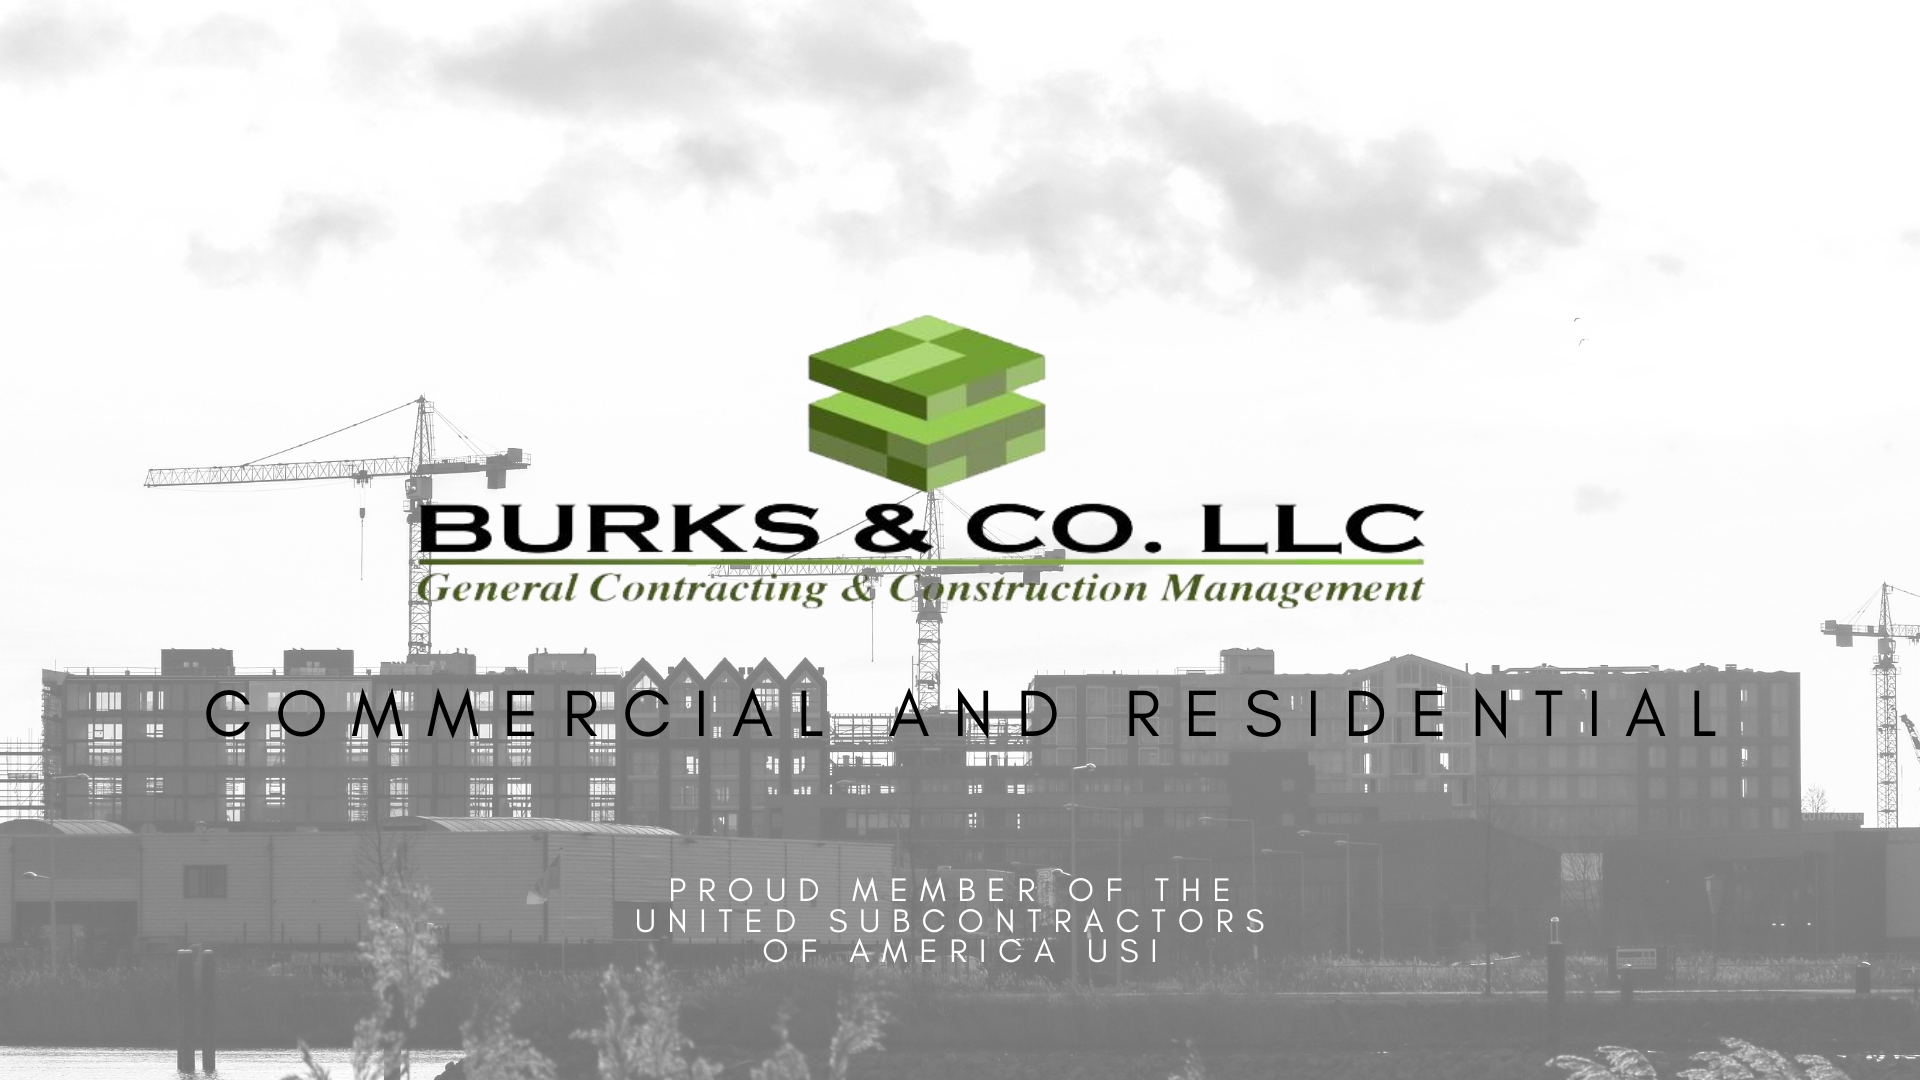 Burks & Co Site Header image.jpg